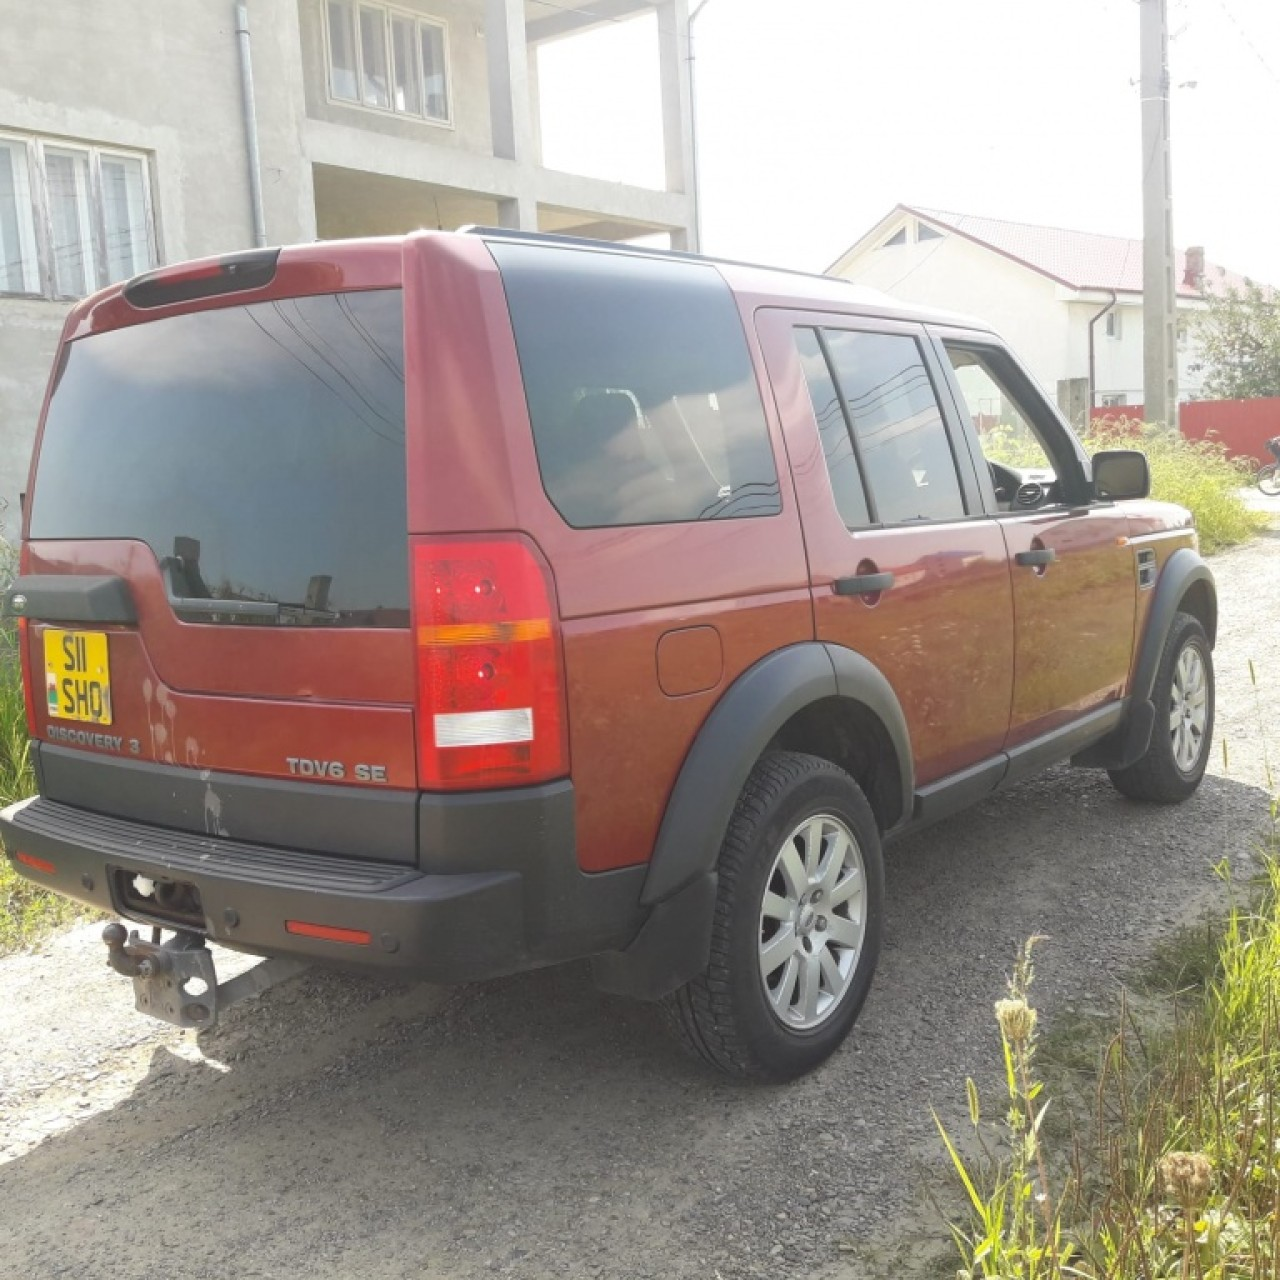 Ax came Land Rover Discovery 2006 SUV 2.7tdv6 d76dt 190hp automata